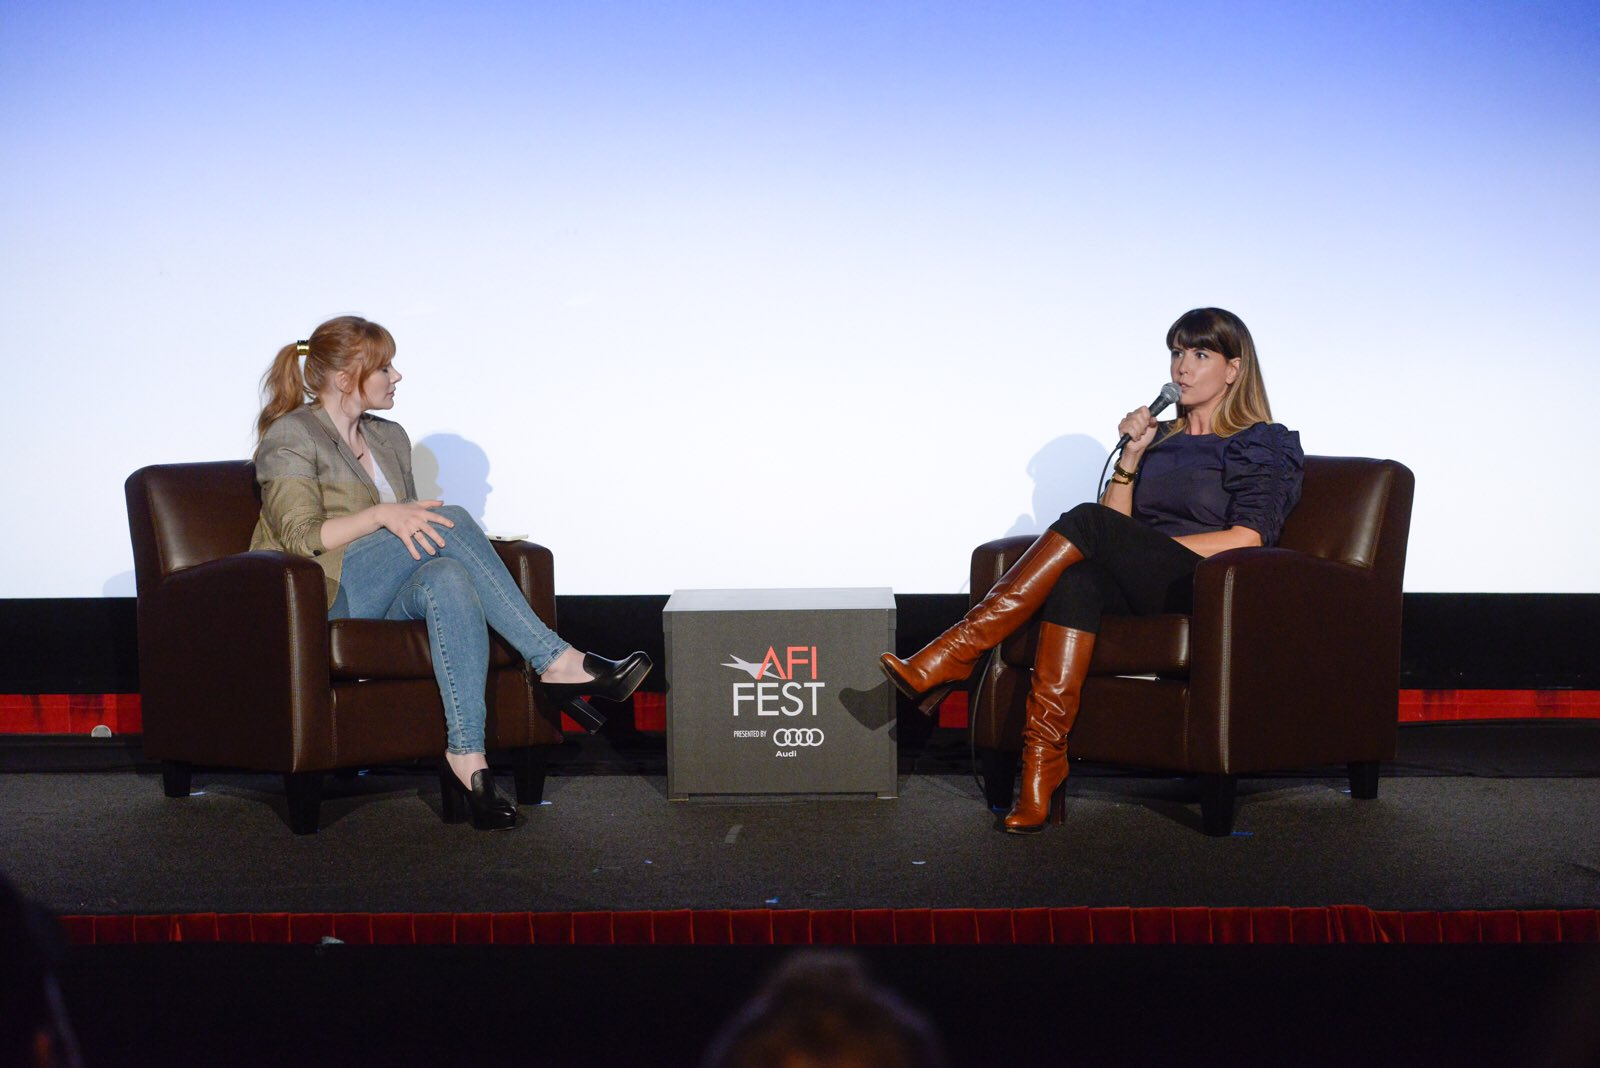 RT @BryceDHoward: An epic interview with warrior pioneer @PattyJenks on filmmaking at @AFIFEST! https://t.co/P60zgE9mcq